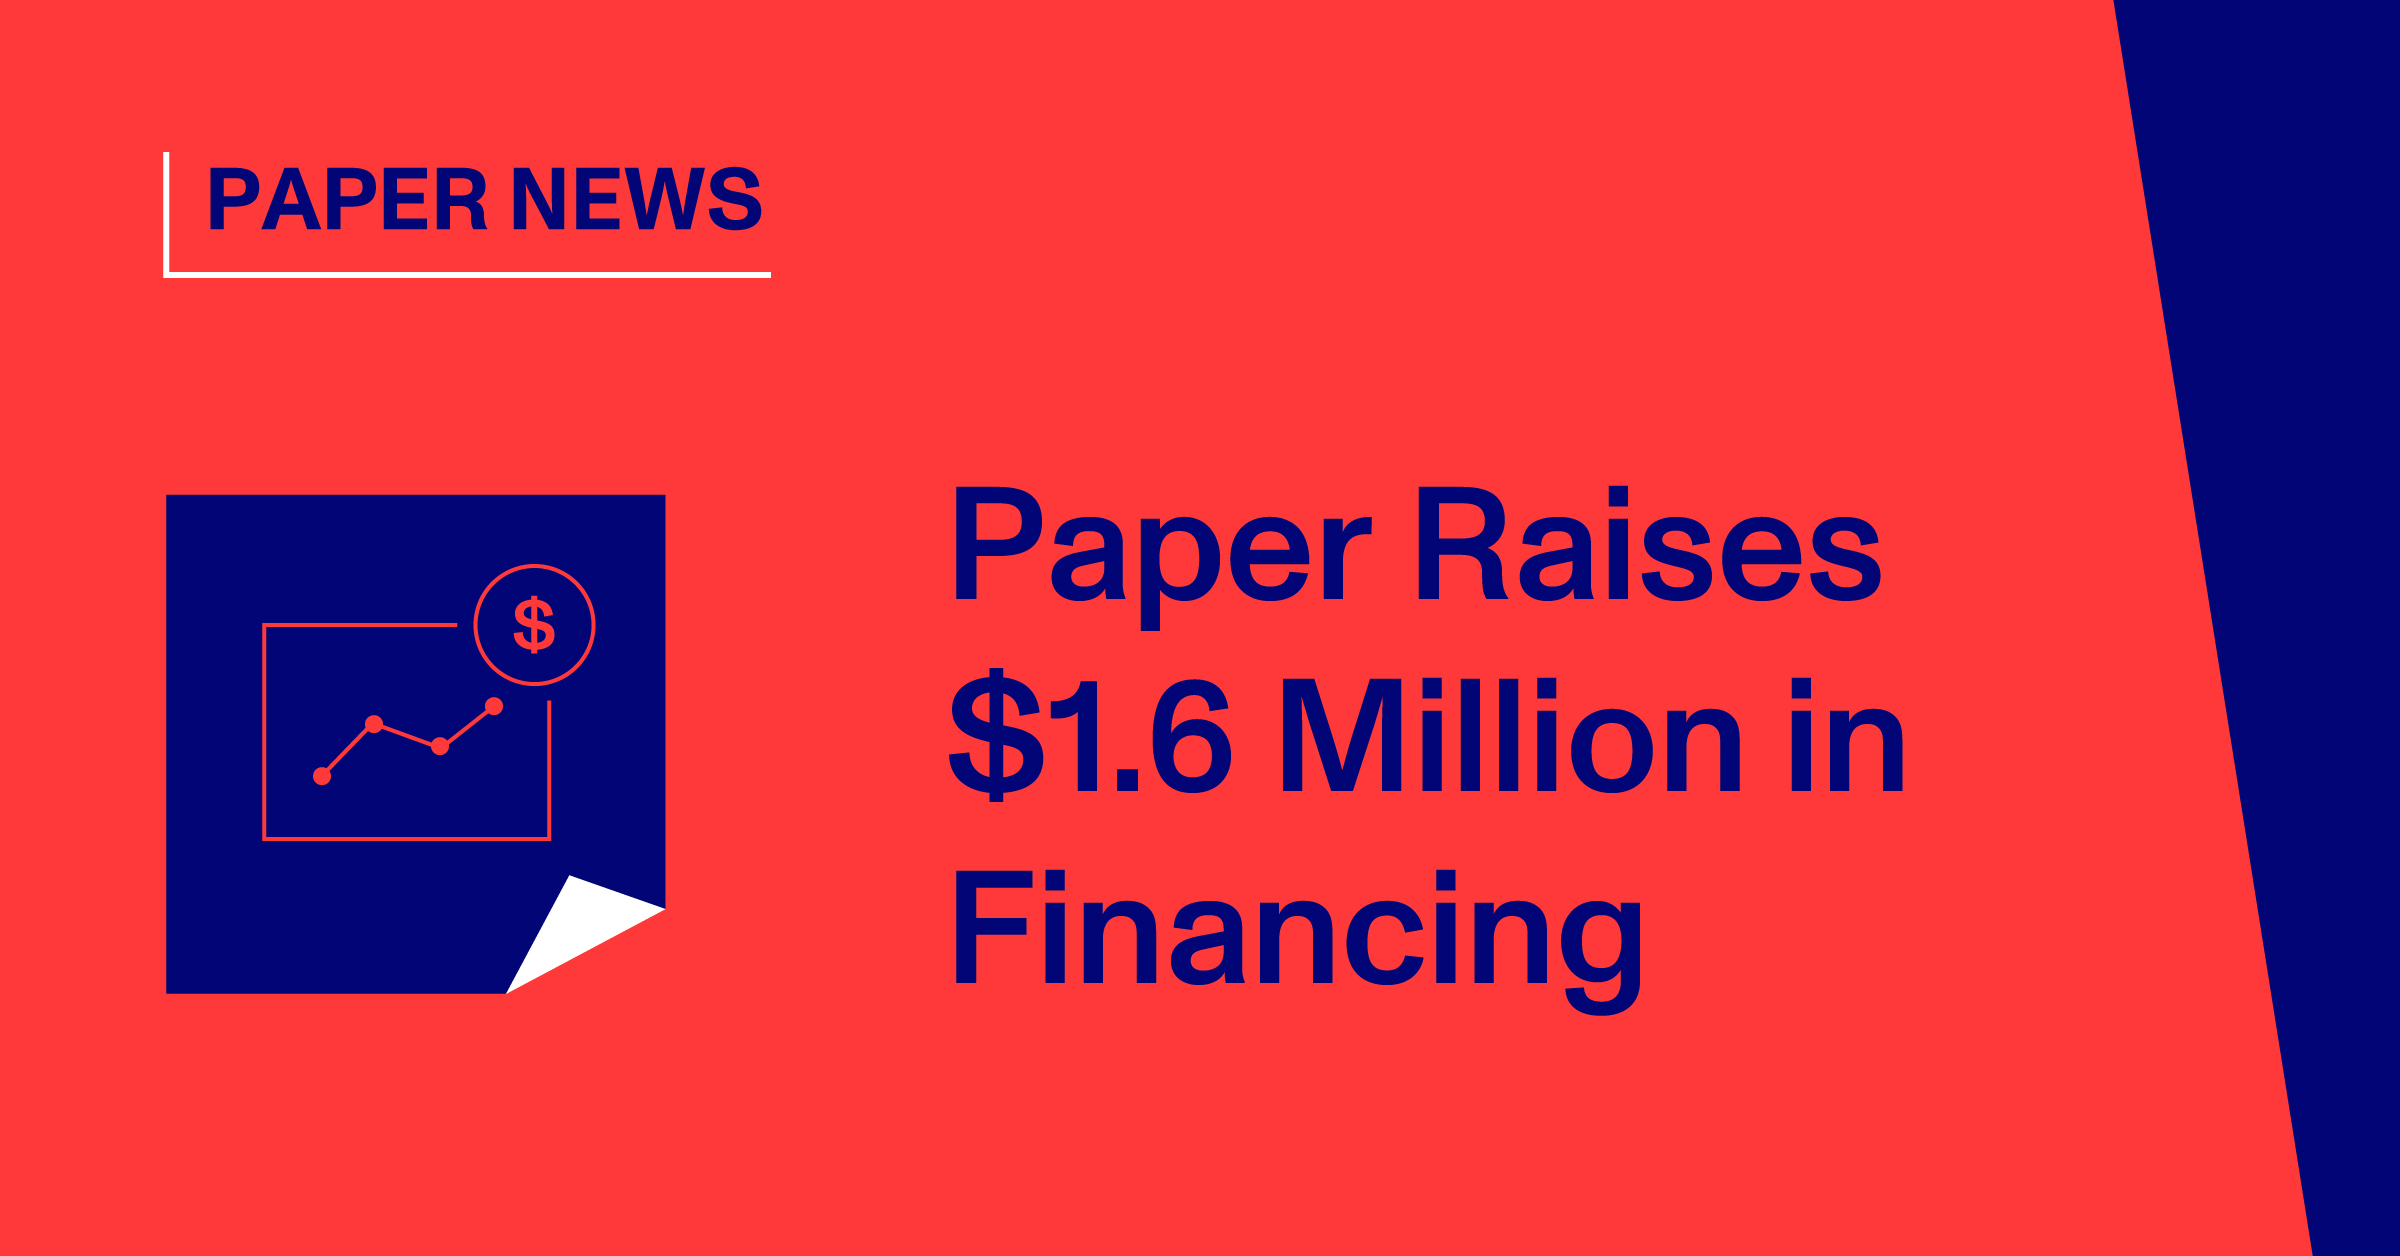 Paper Raises $1.6 Million in Financing